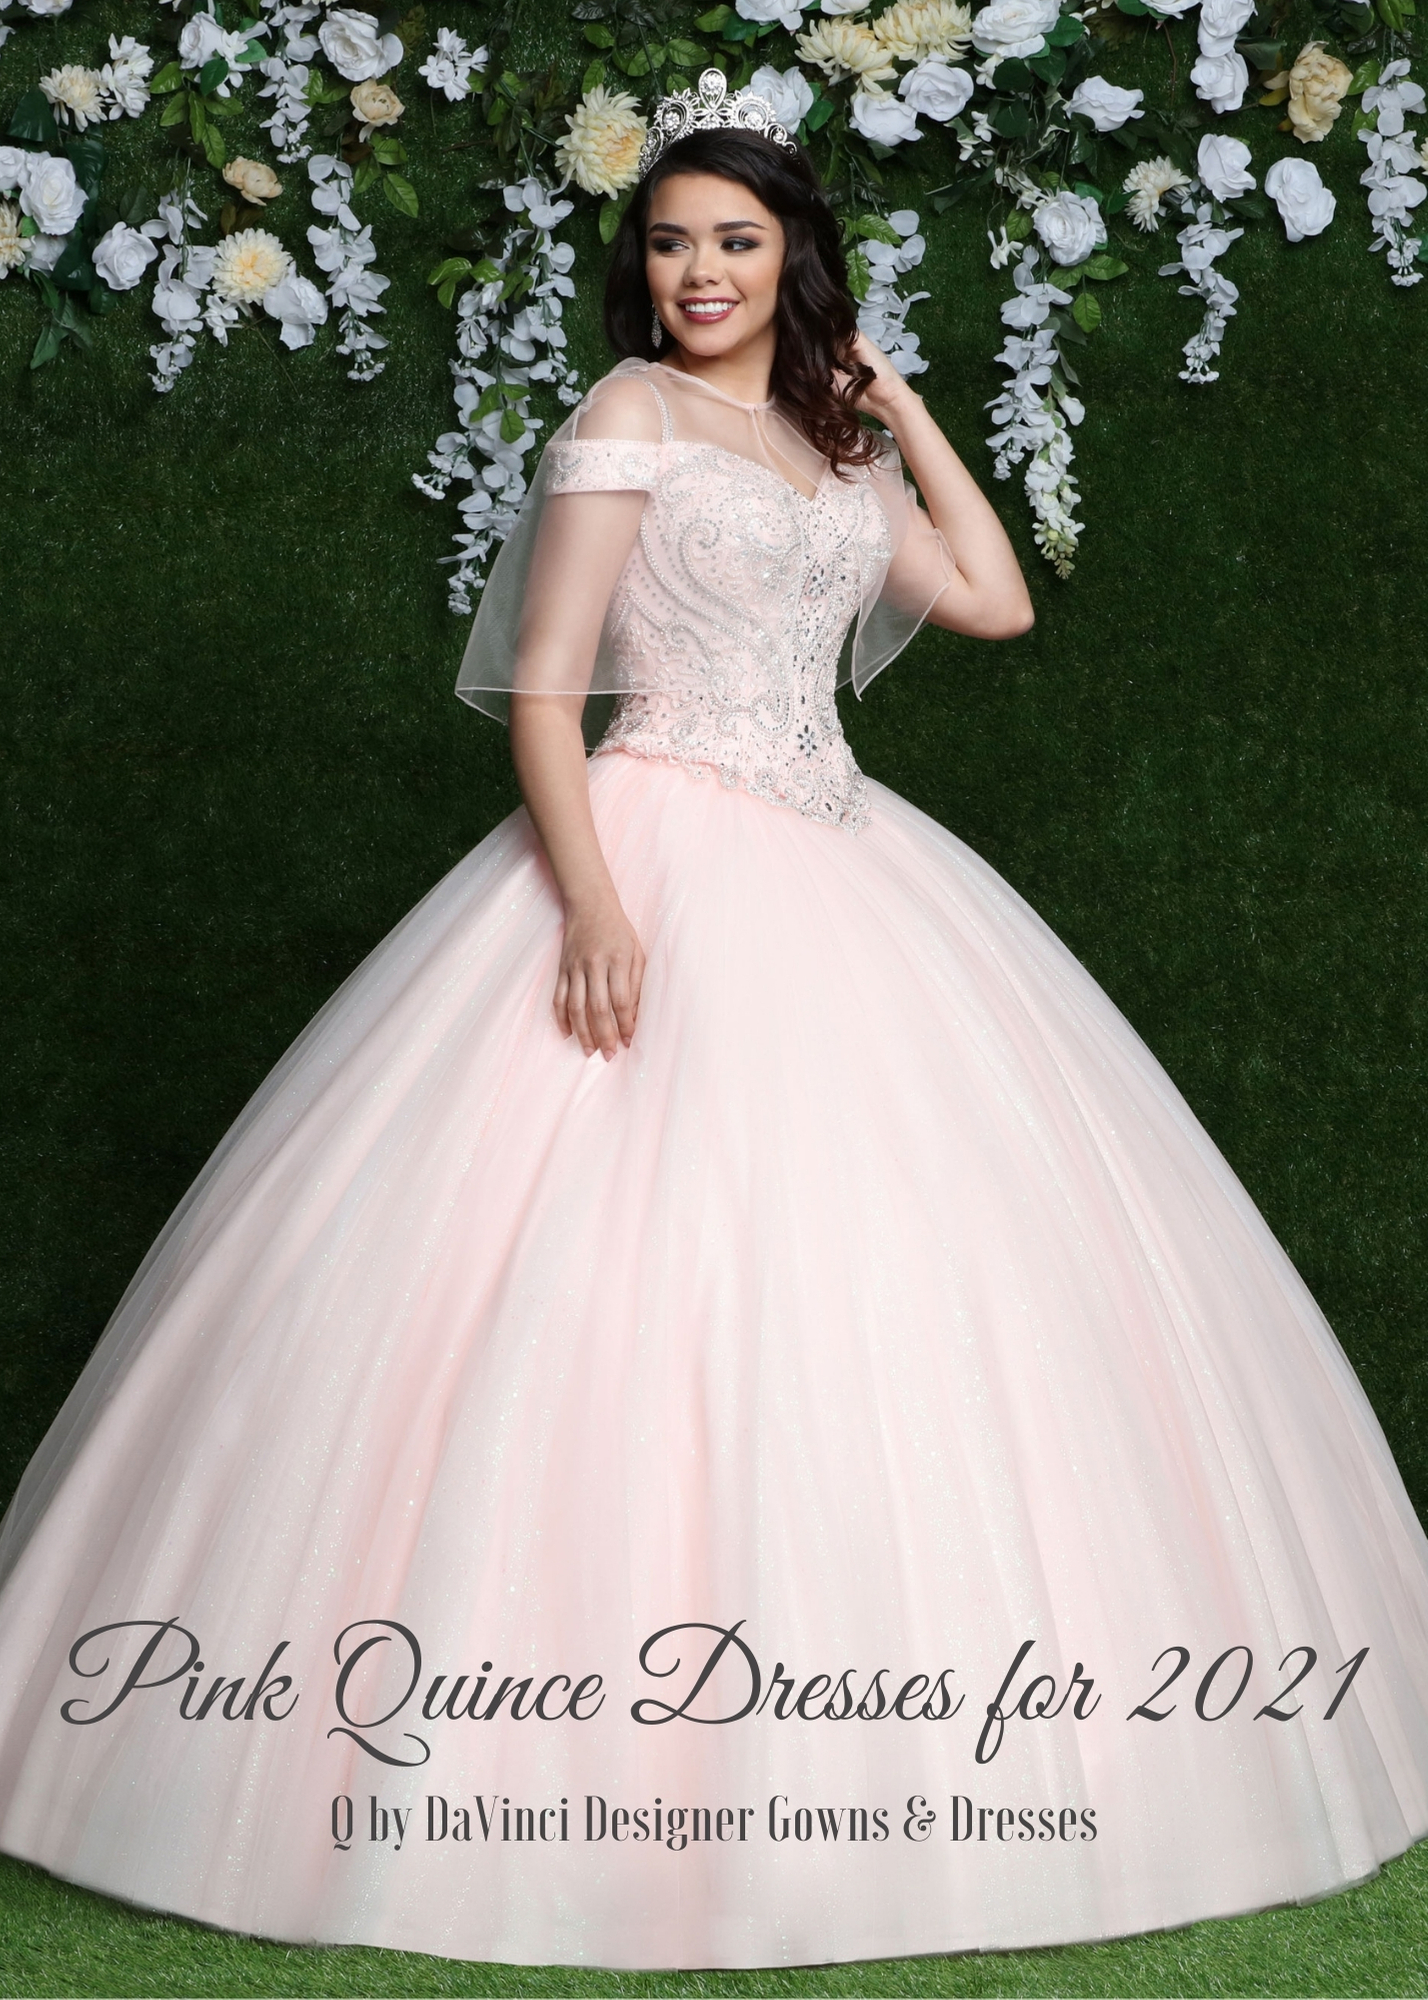 Pink Quinceanera Dresses for 2021 – Q by DaVinci